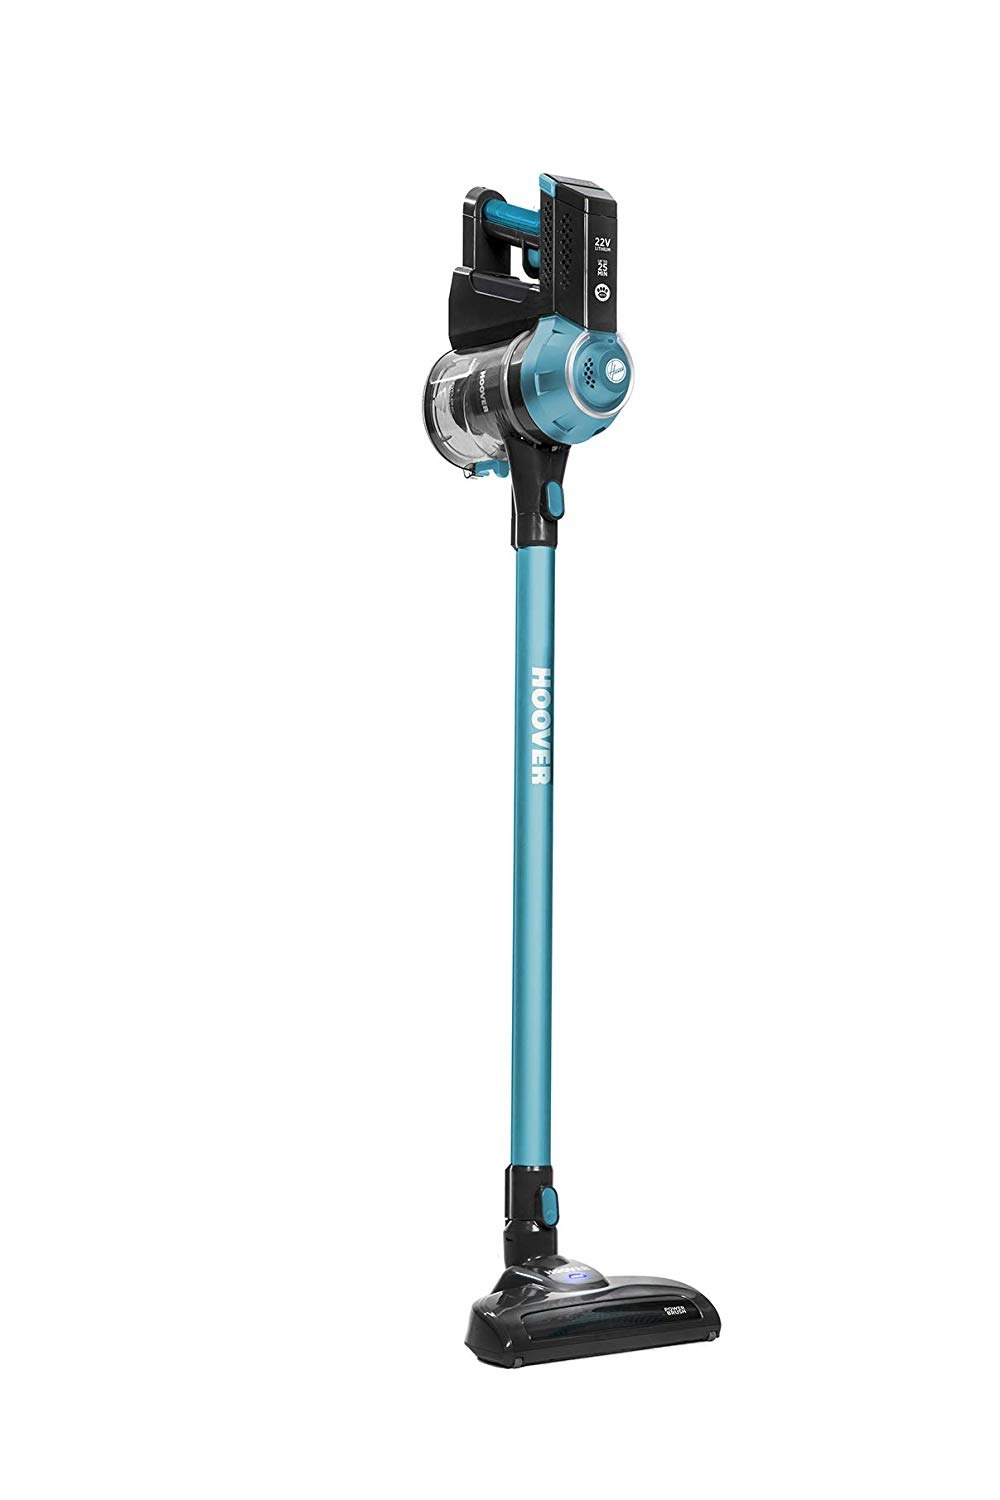 ​Hoover Freedom 2-in-1 Pets Cordless Stick Vacuum Cleaner